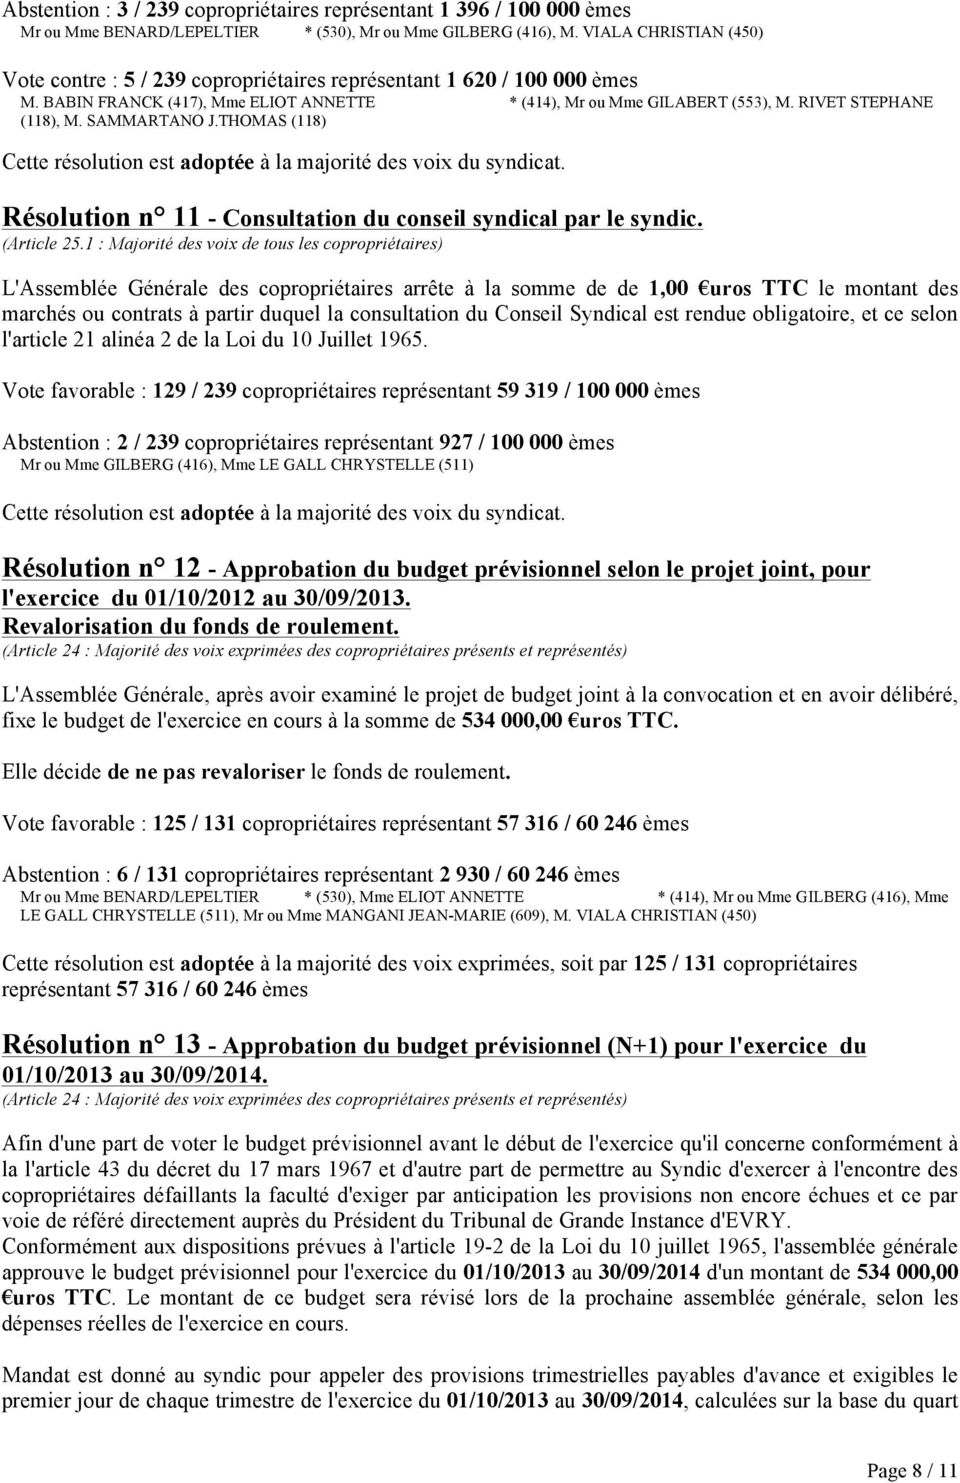 SAMMARTANO J.THOMAS (118) Résolution n 11 - Consultation du conseil syndical par le syndic.